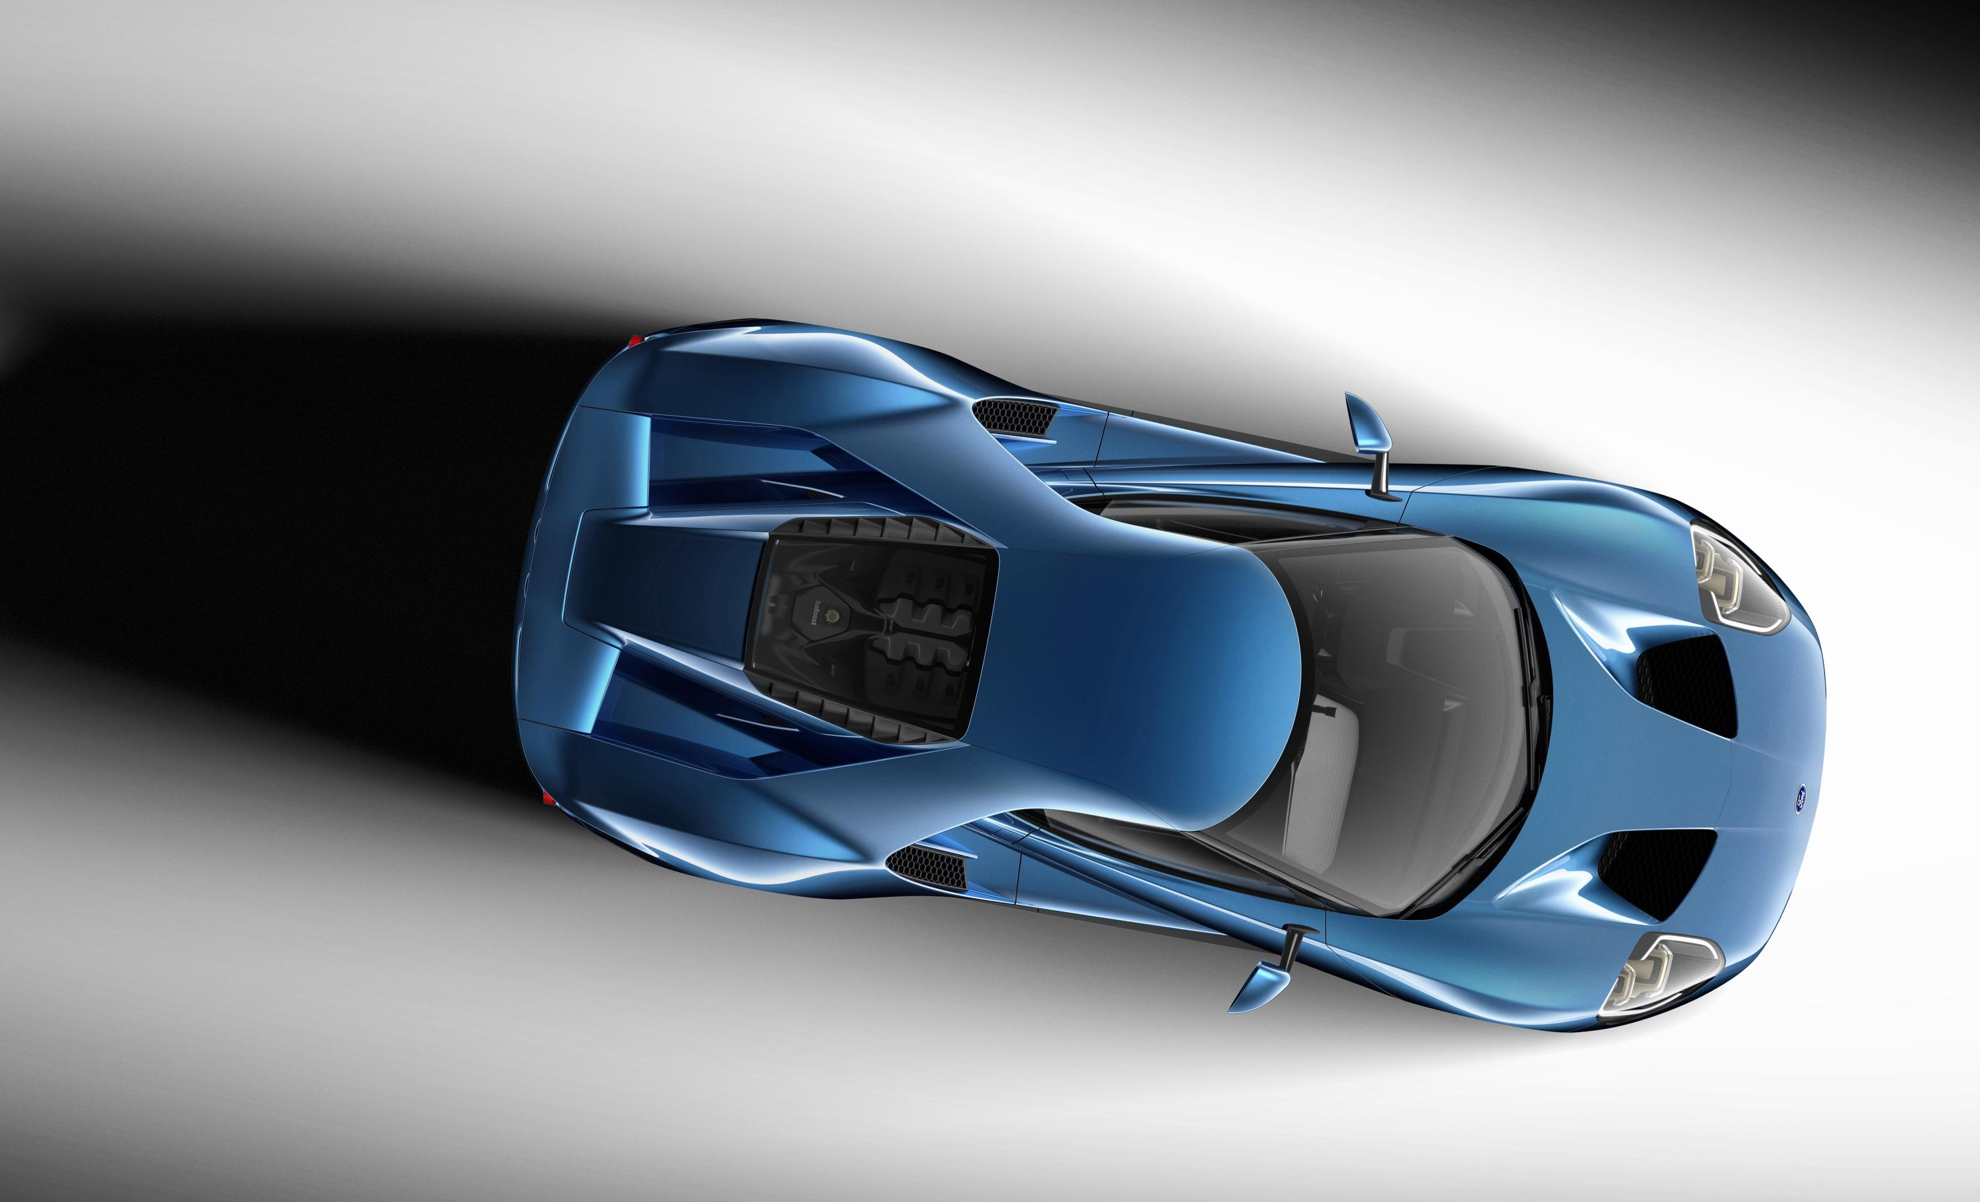 Sets New Standards For Ford Innovation Through Performance With Advances In Light Weighting Aerodynamics And Ultra Efficient Ecoboost Engine Ford Gt